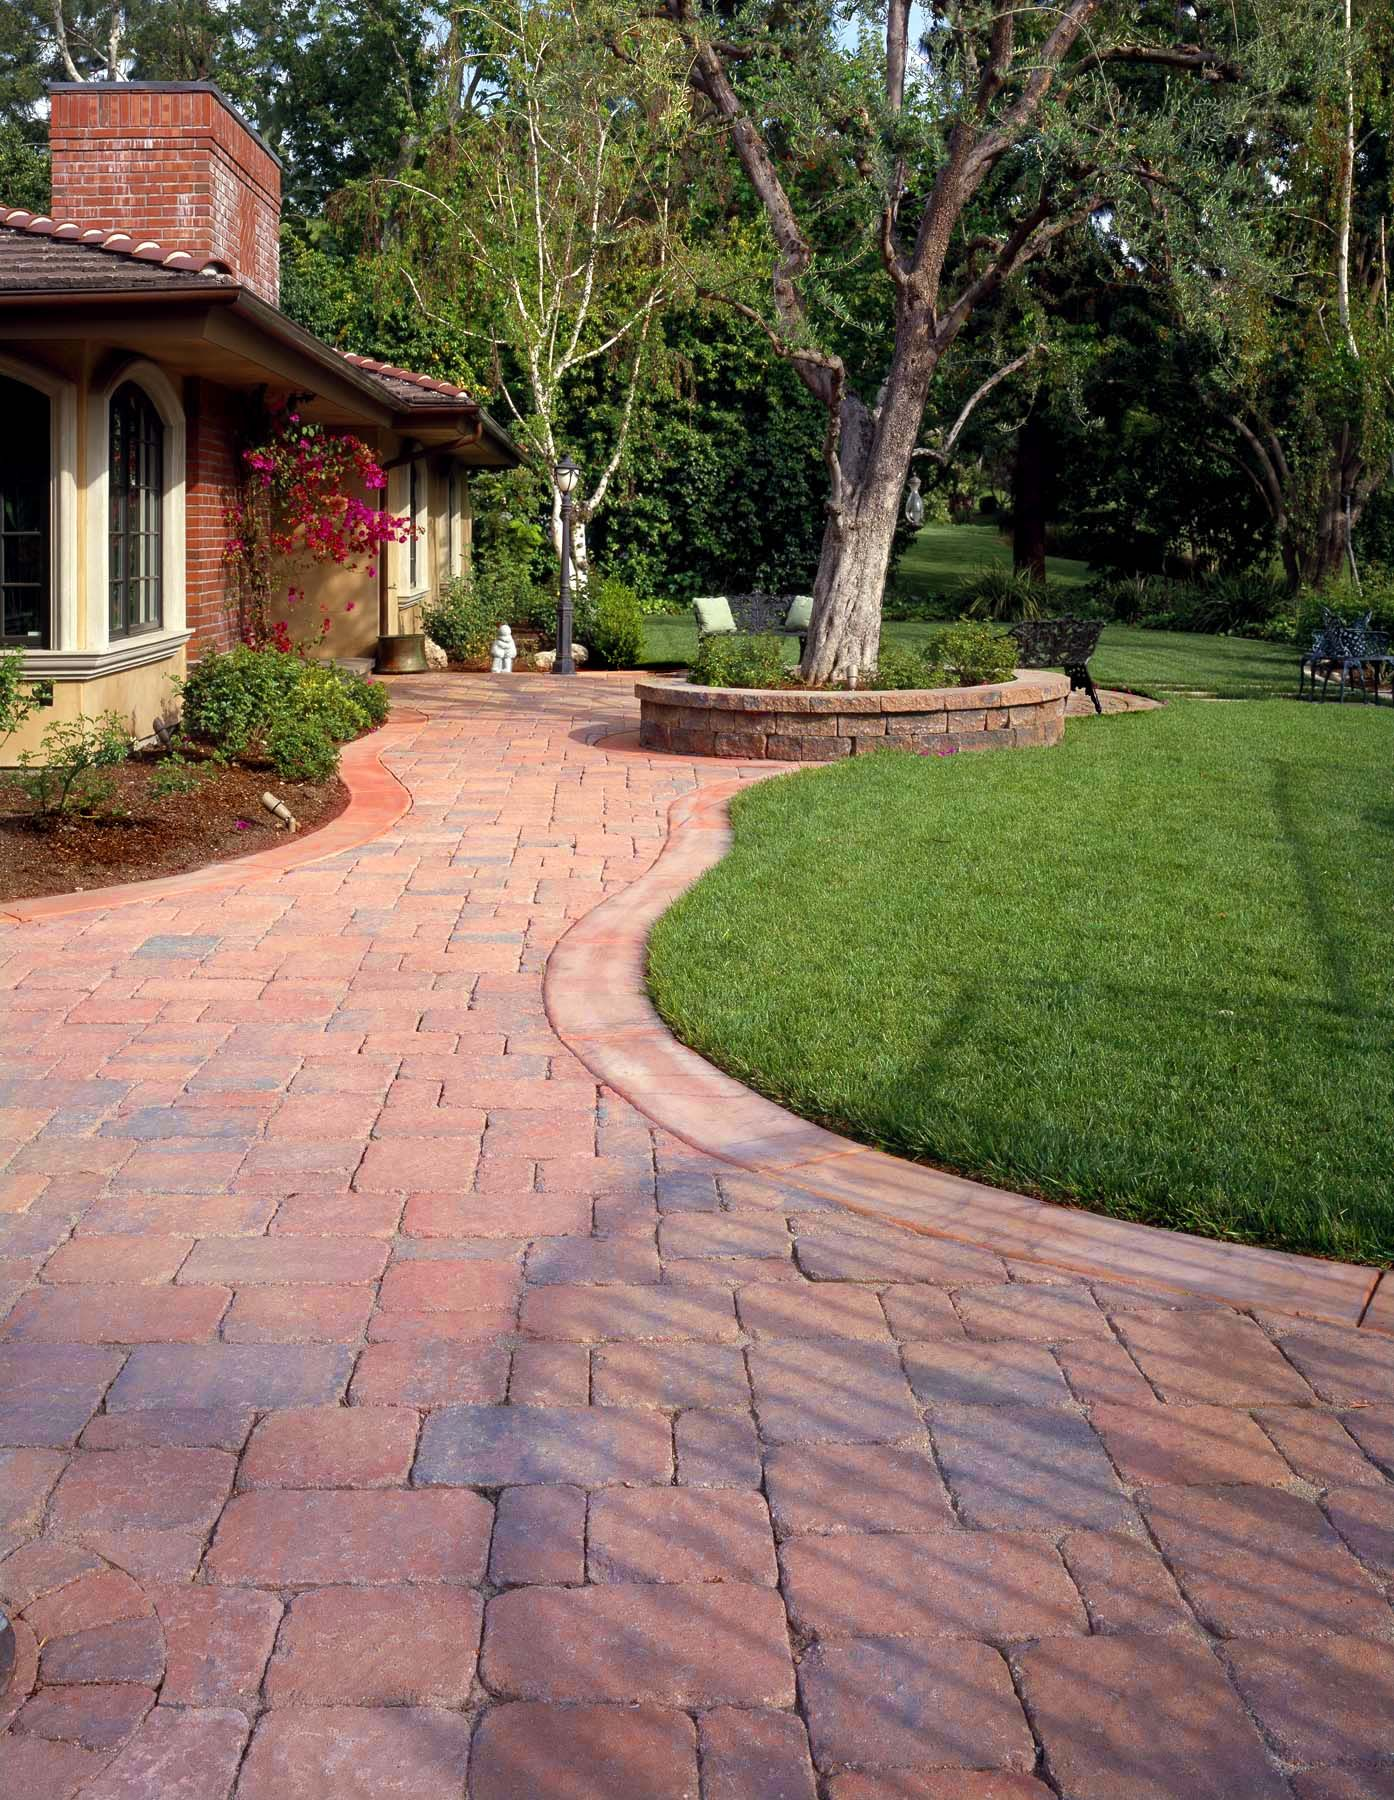 interlocking driveway - Google Search | Patio, Patio ... on Red Paver Patio Ideas id=49302